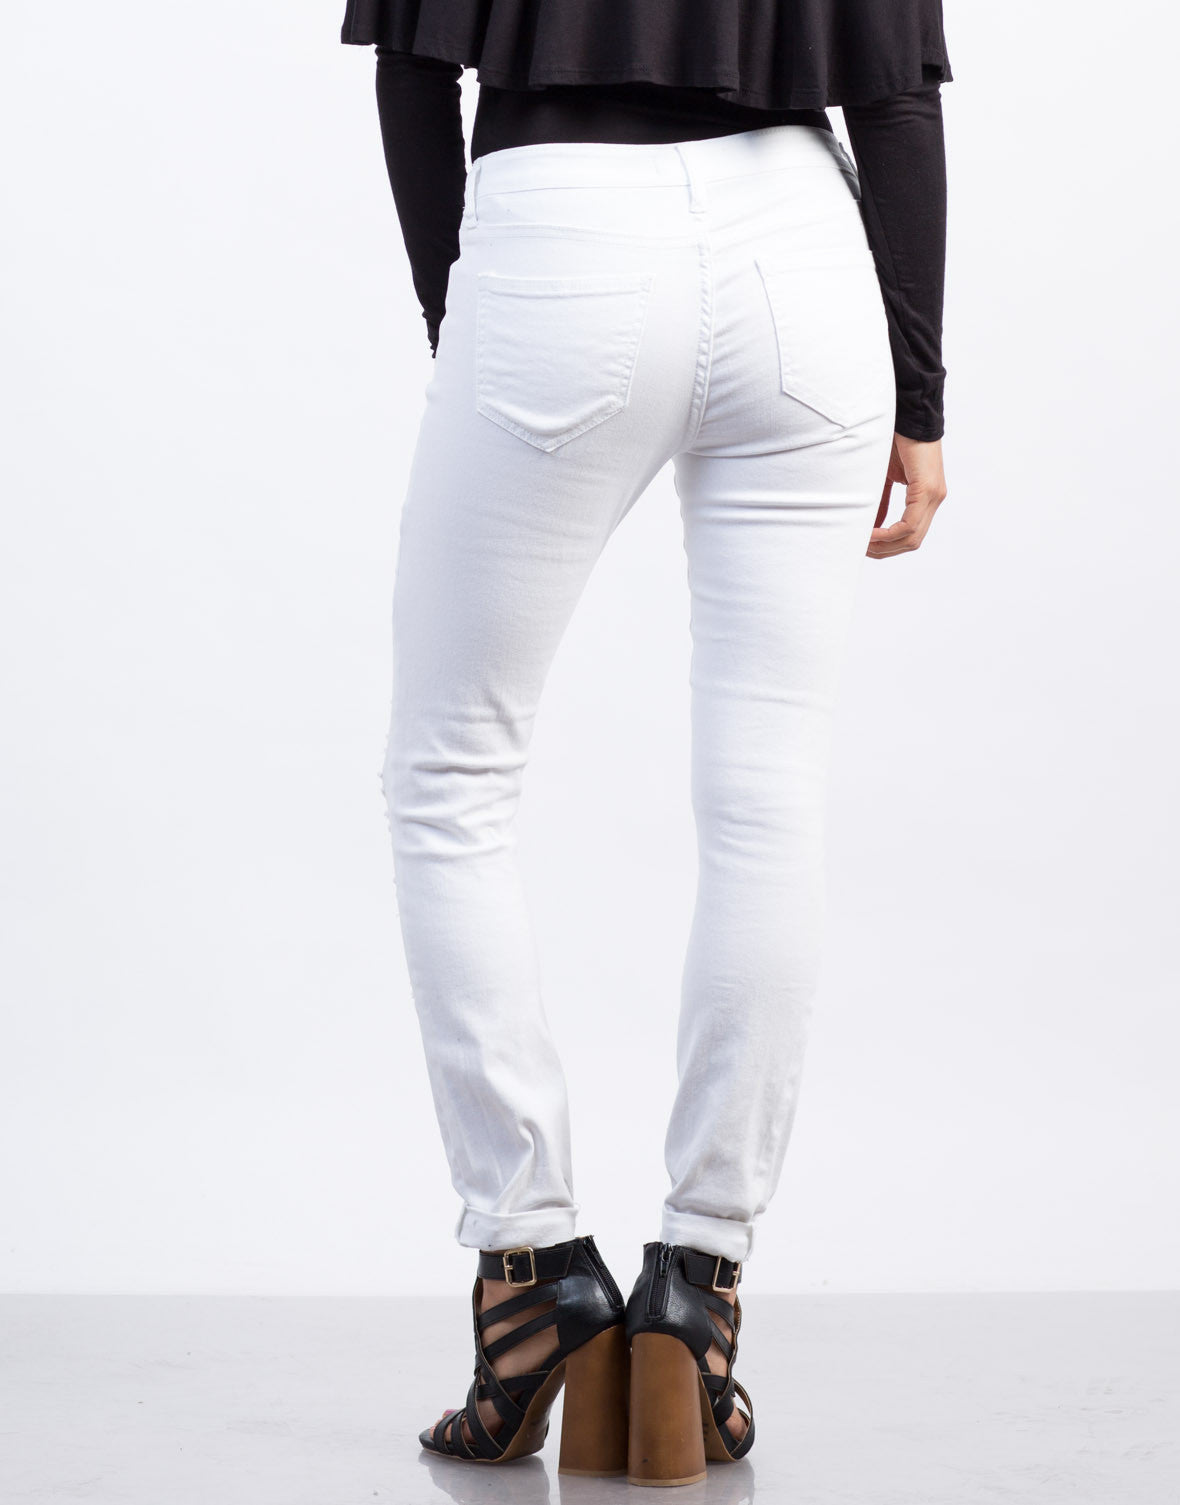 Back View of Distressed White Skinny Jeans